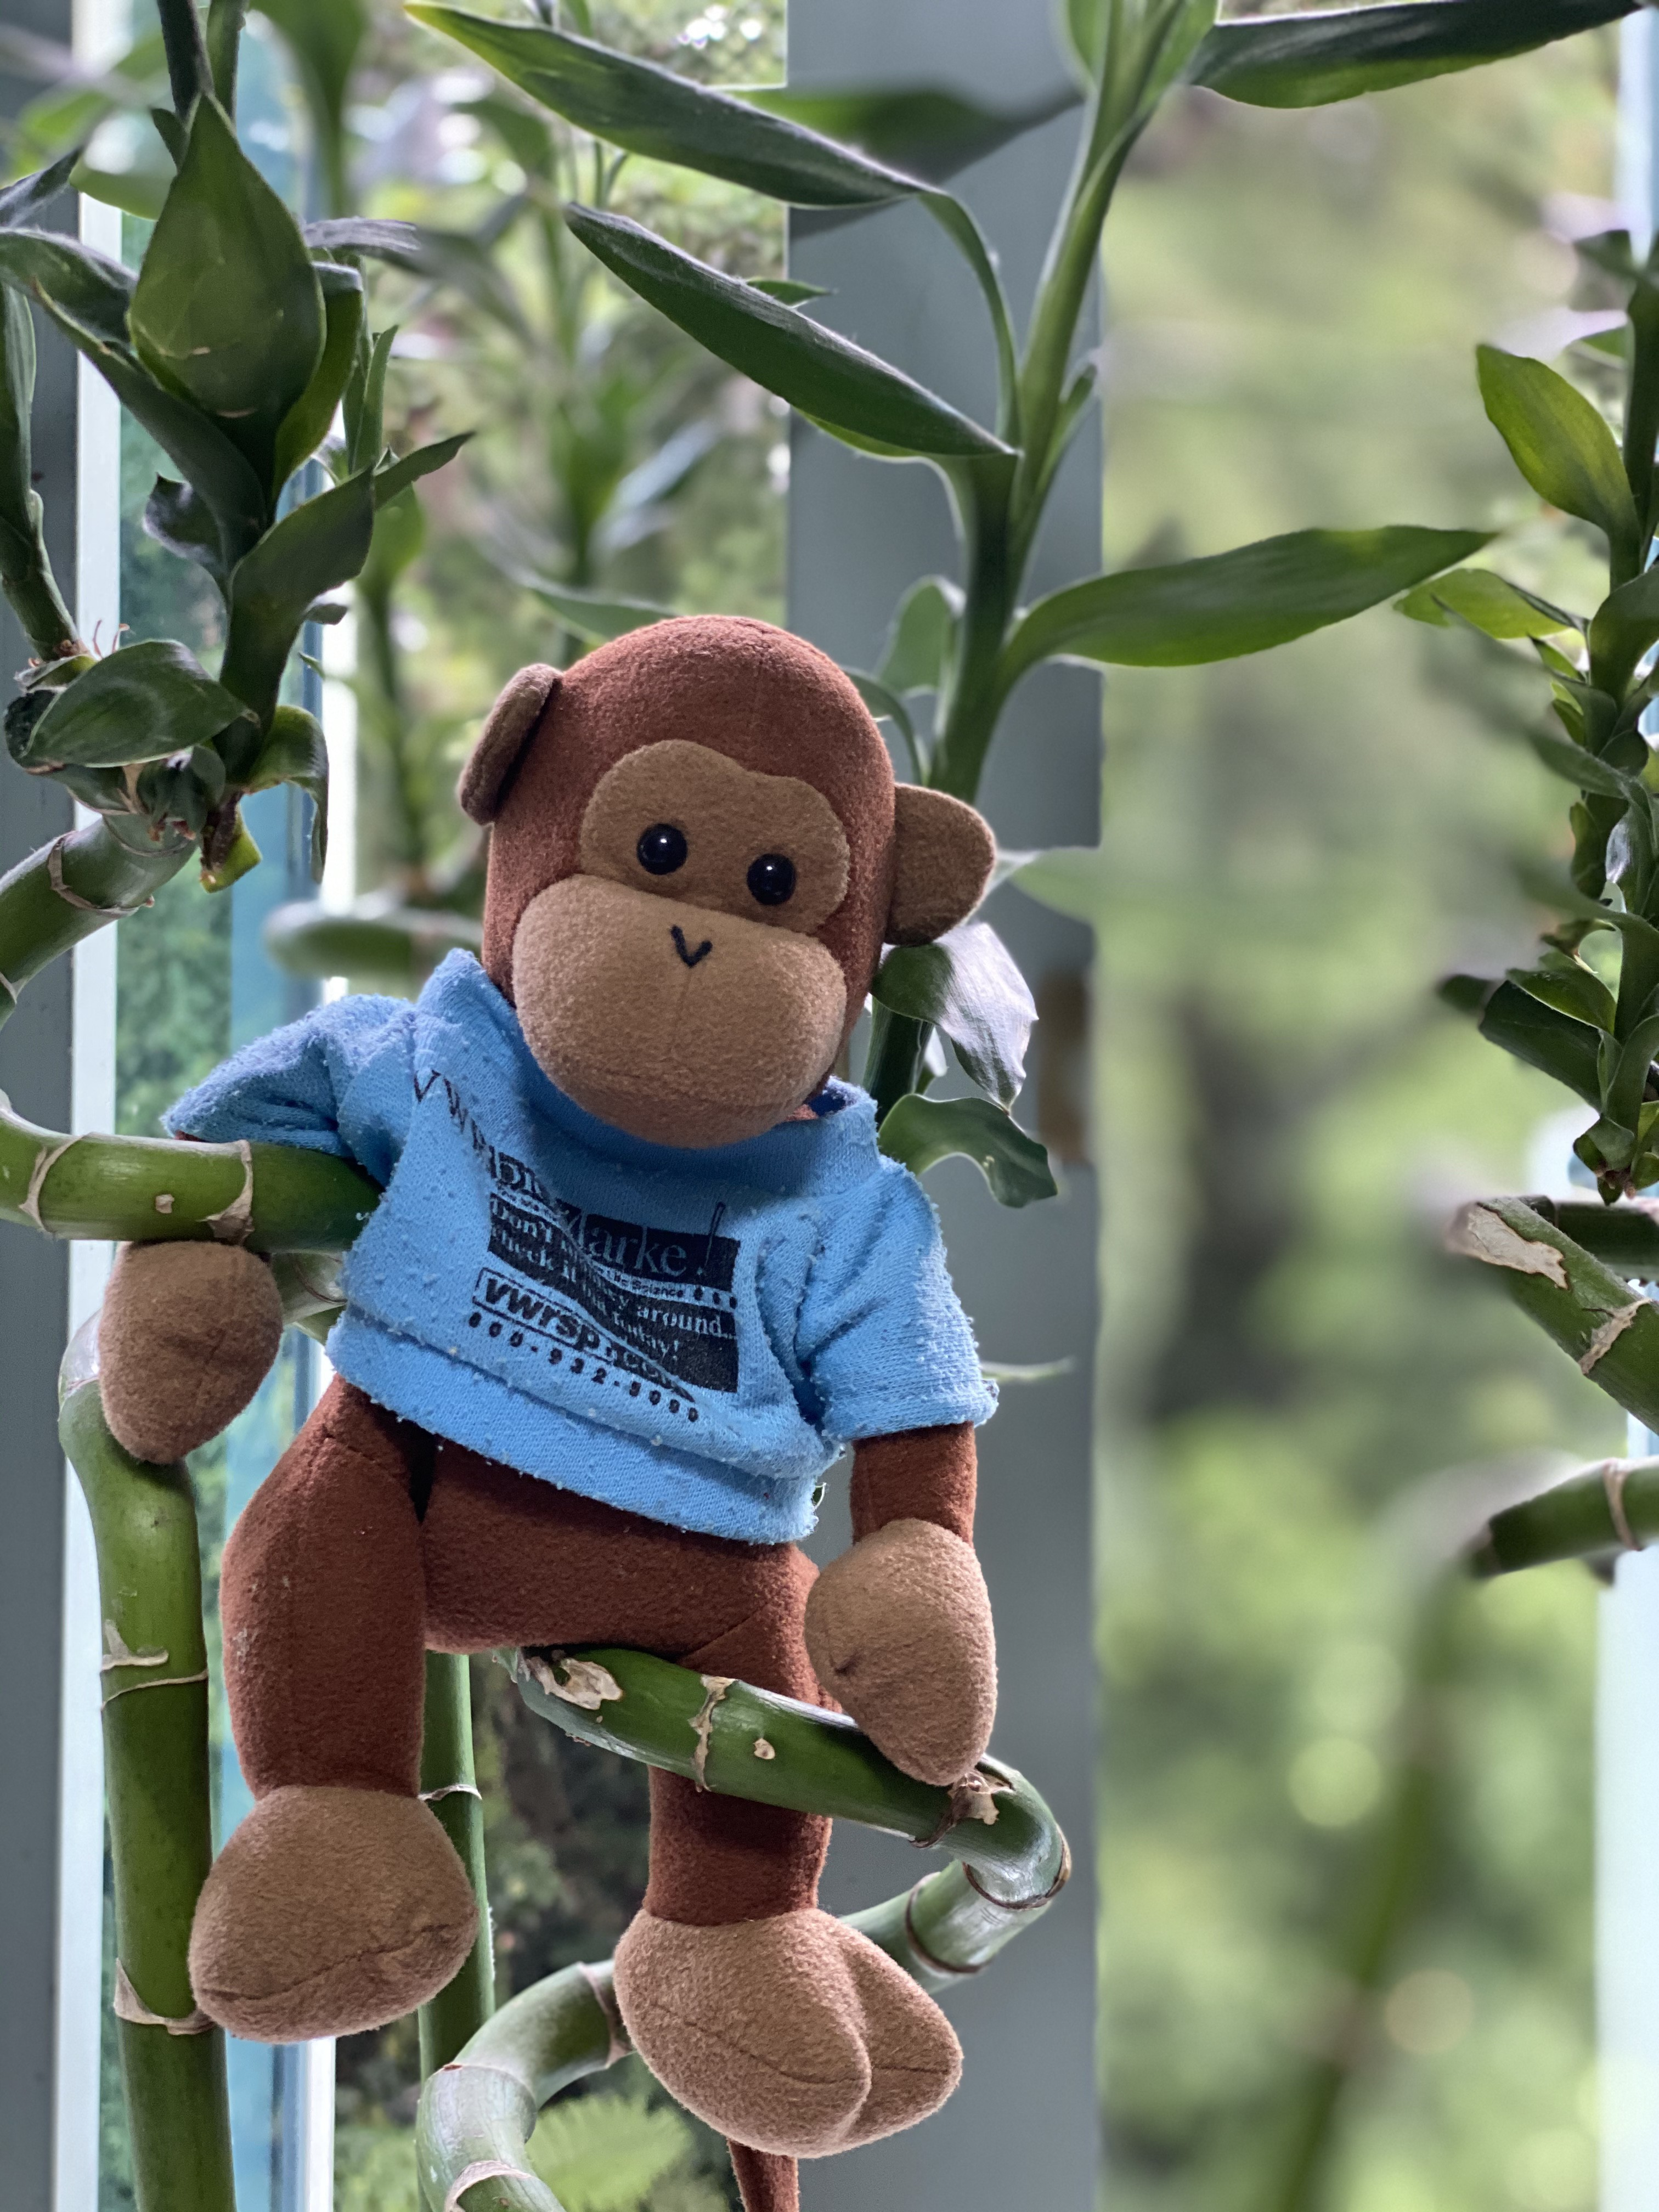 Toy monkey with a blue shirt